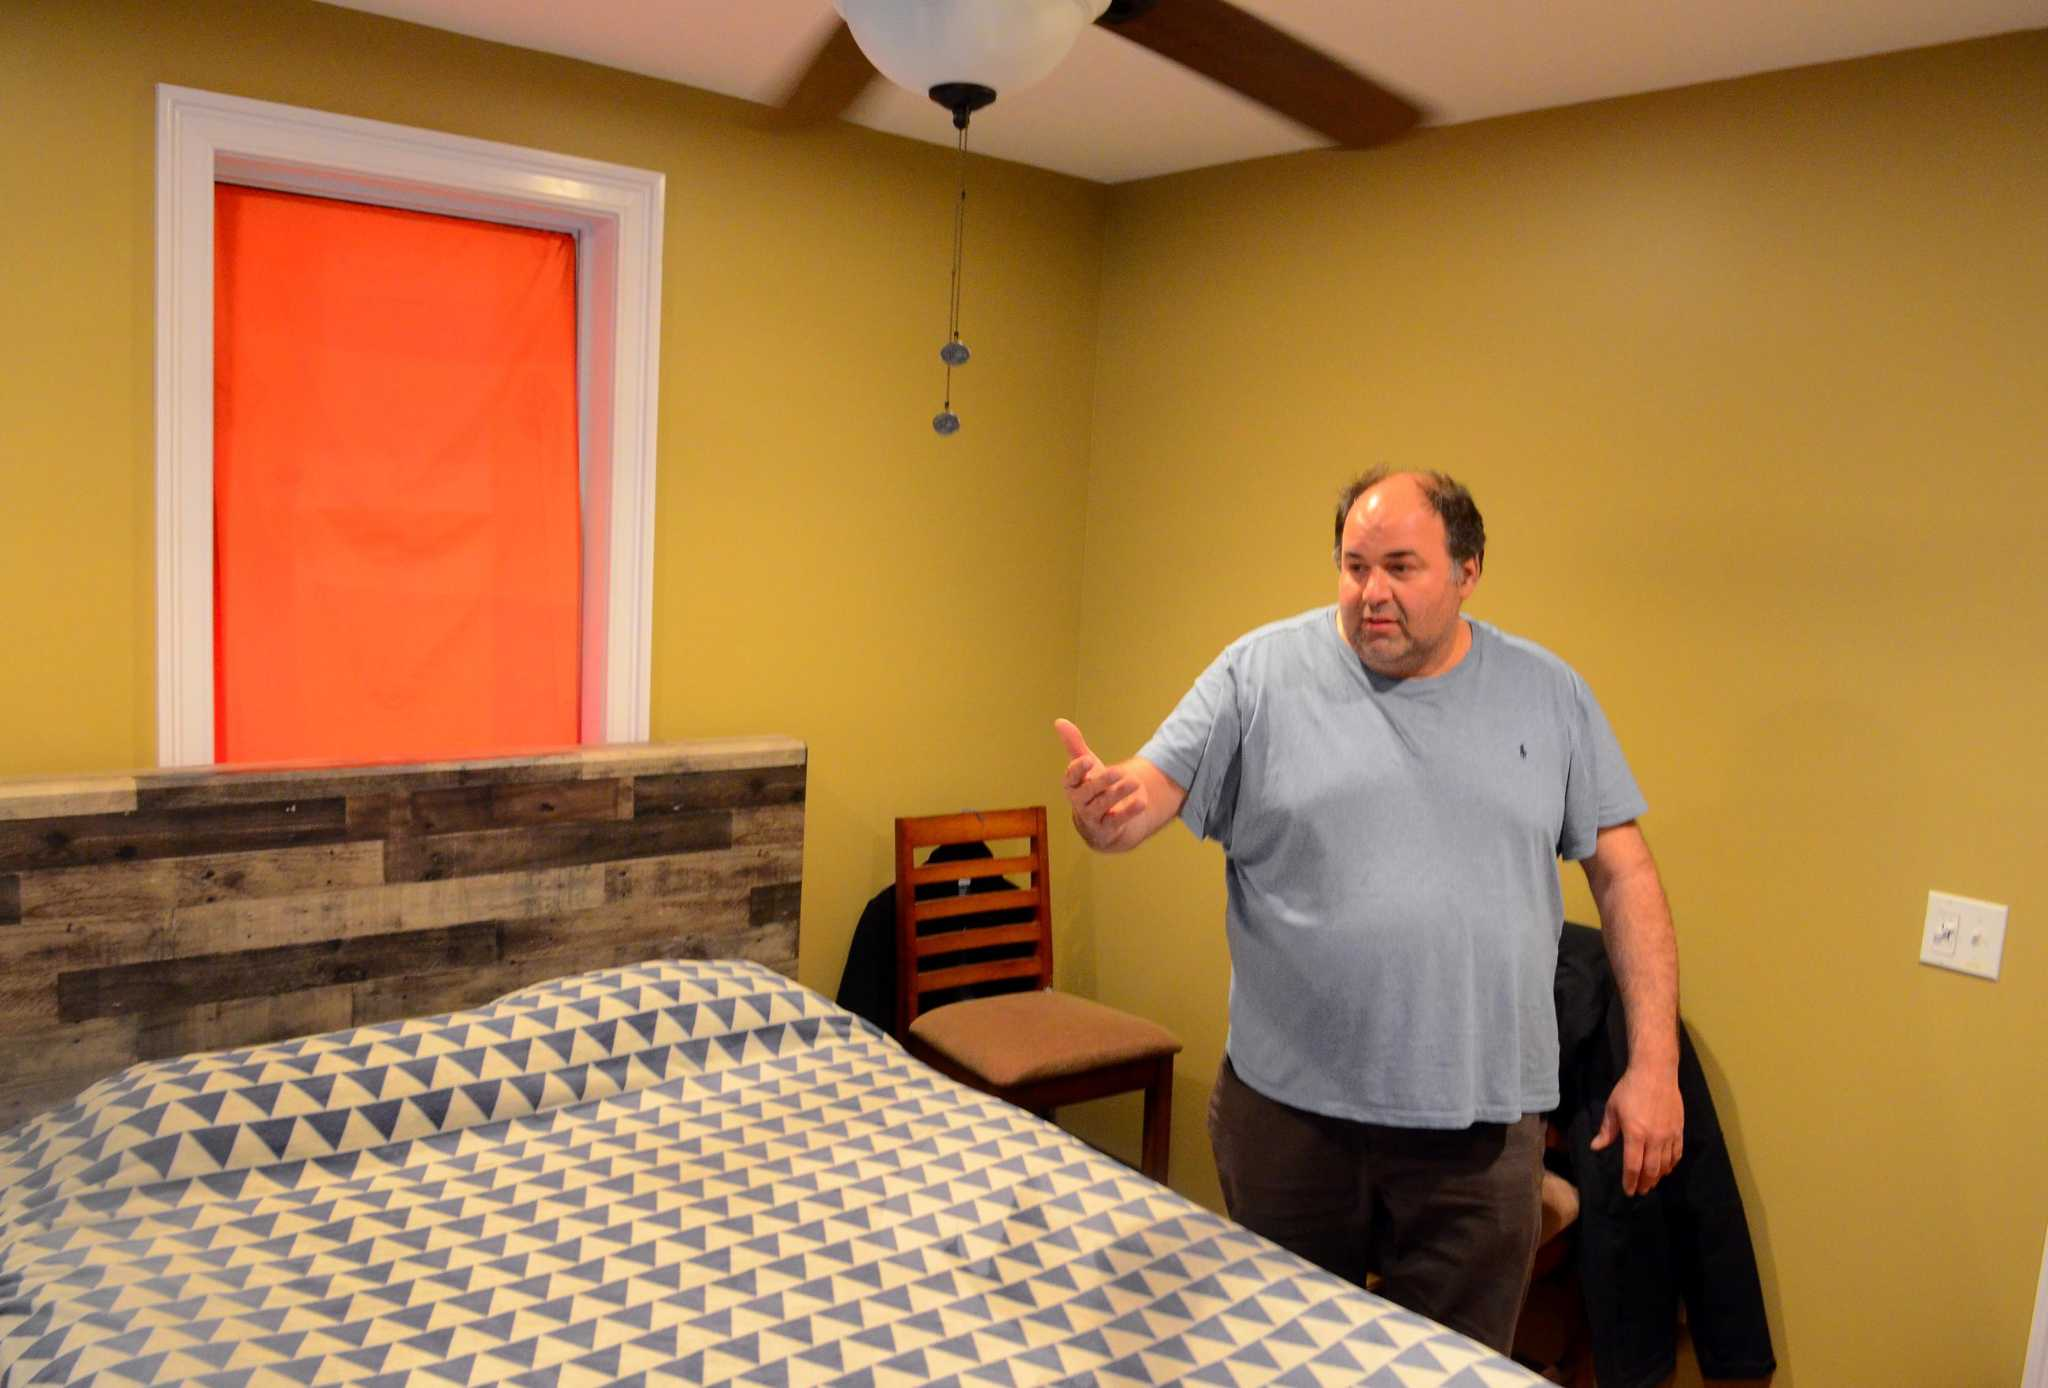 City inspects Bridgeport ed board member's apartment